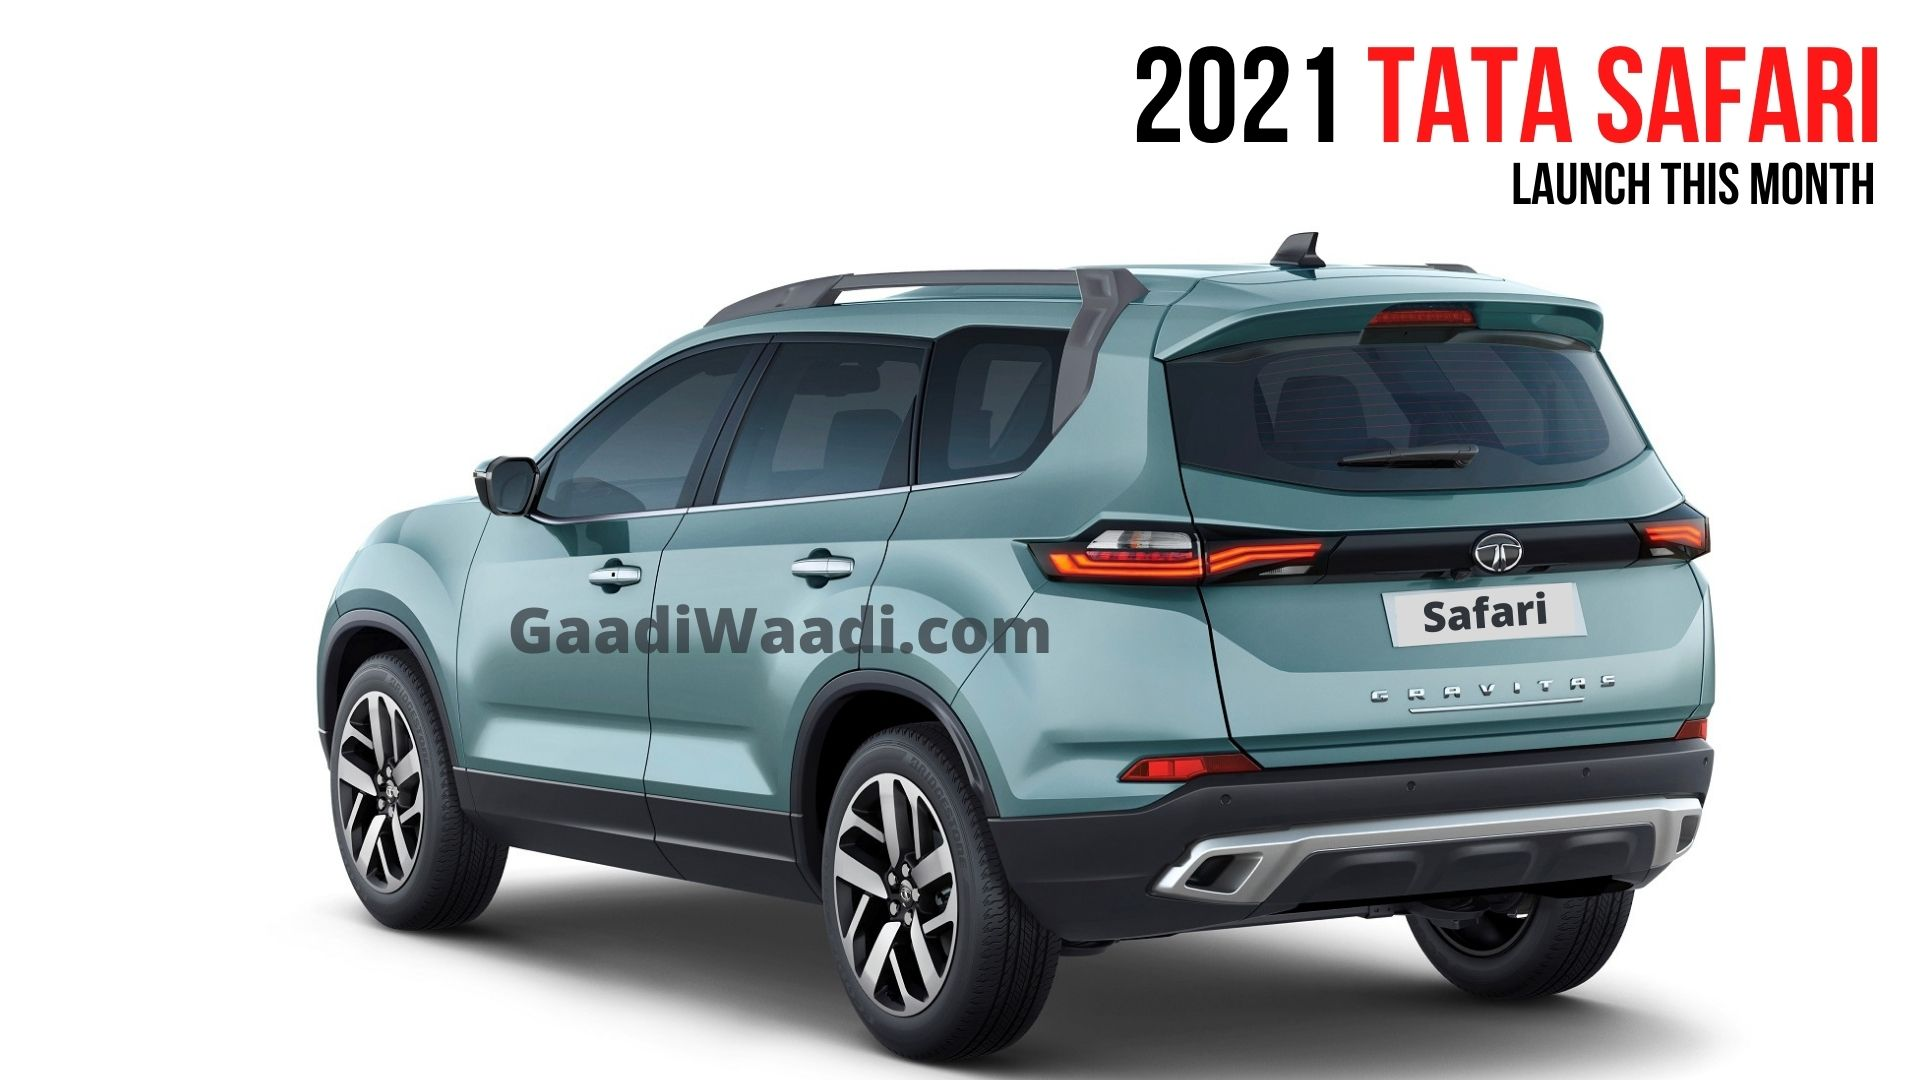 2021 Tata Safari 7 Seater Suv Launching This Month Official